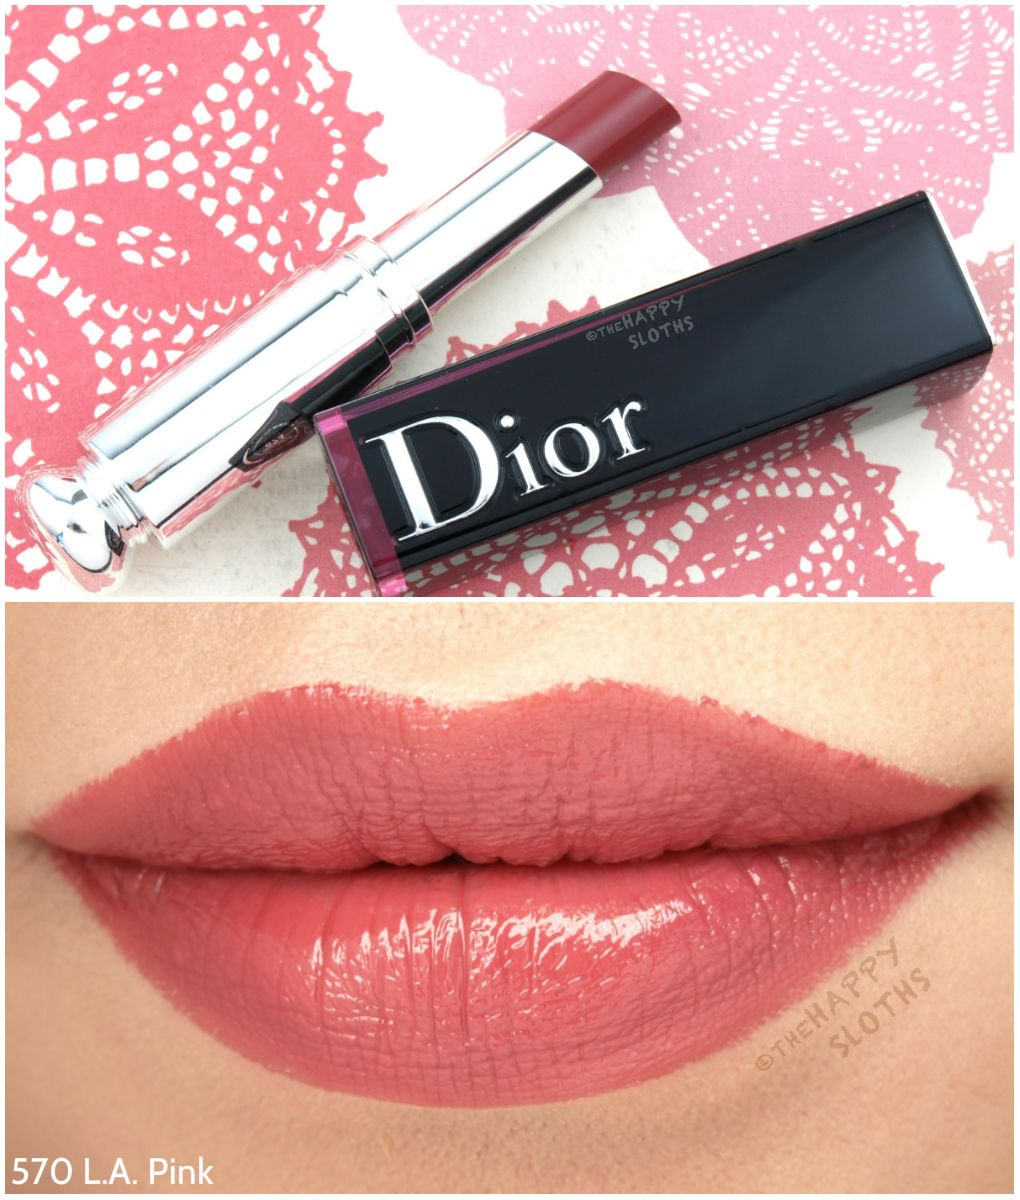 Dior Addict Lacquer Stick: Review and Swatches | Dior addict, Swatch ...